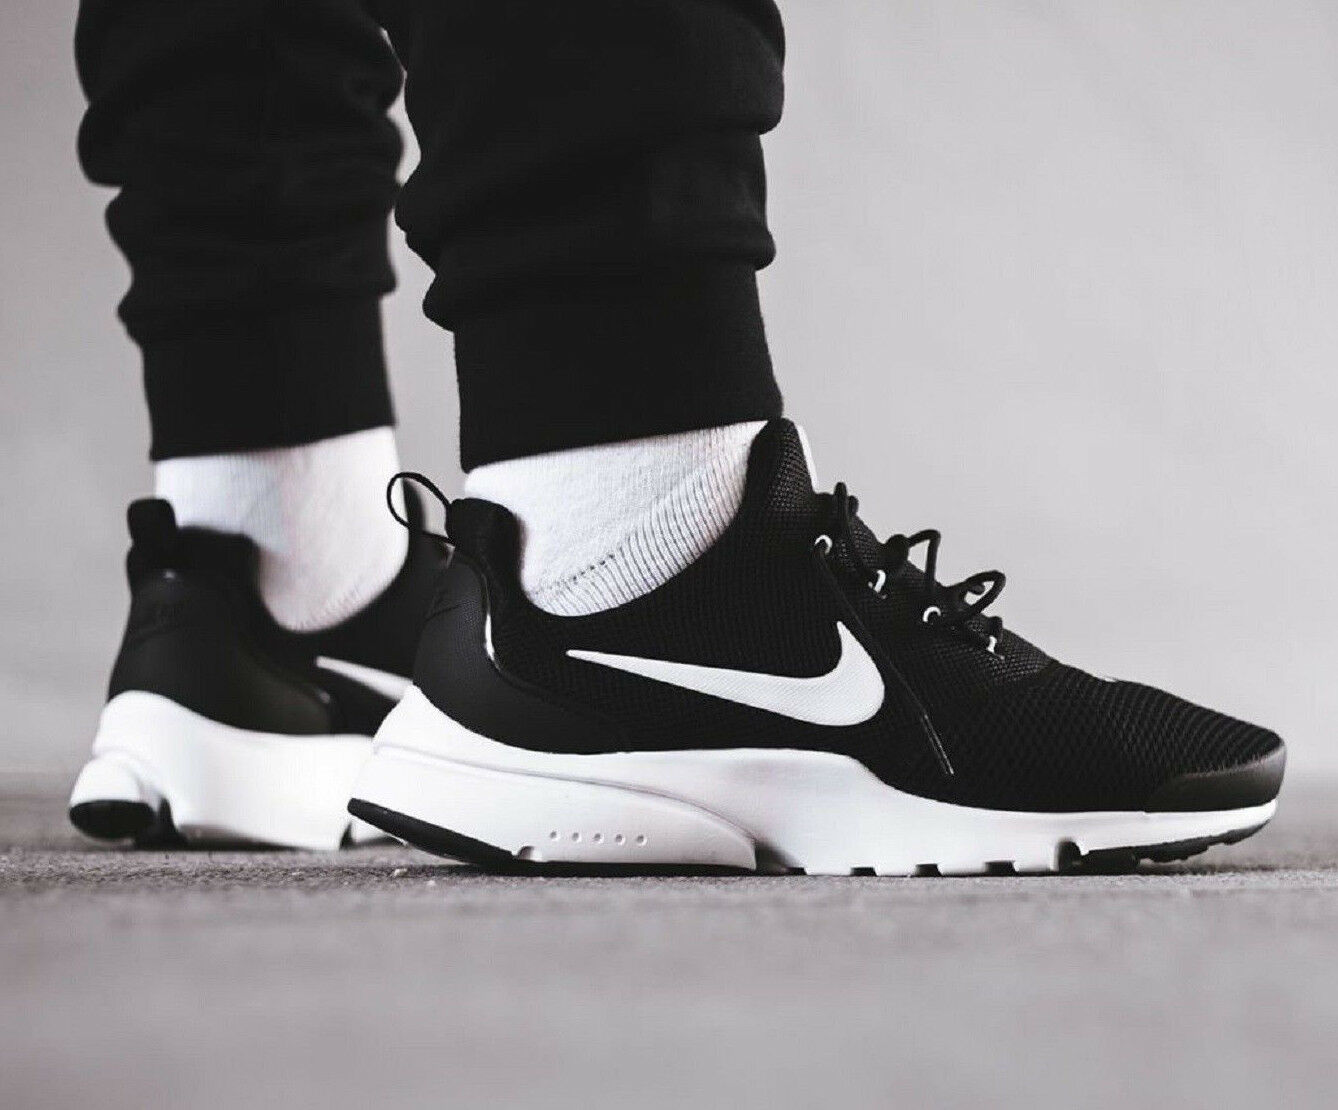 NIKE PRESTO FLY Running Trainers Gym Casual Casual Gym Fashion - () Black  White 216b5d